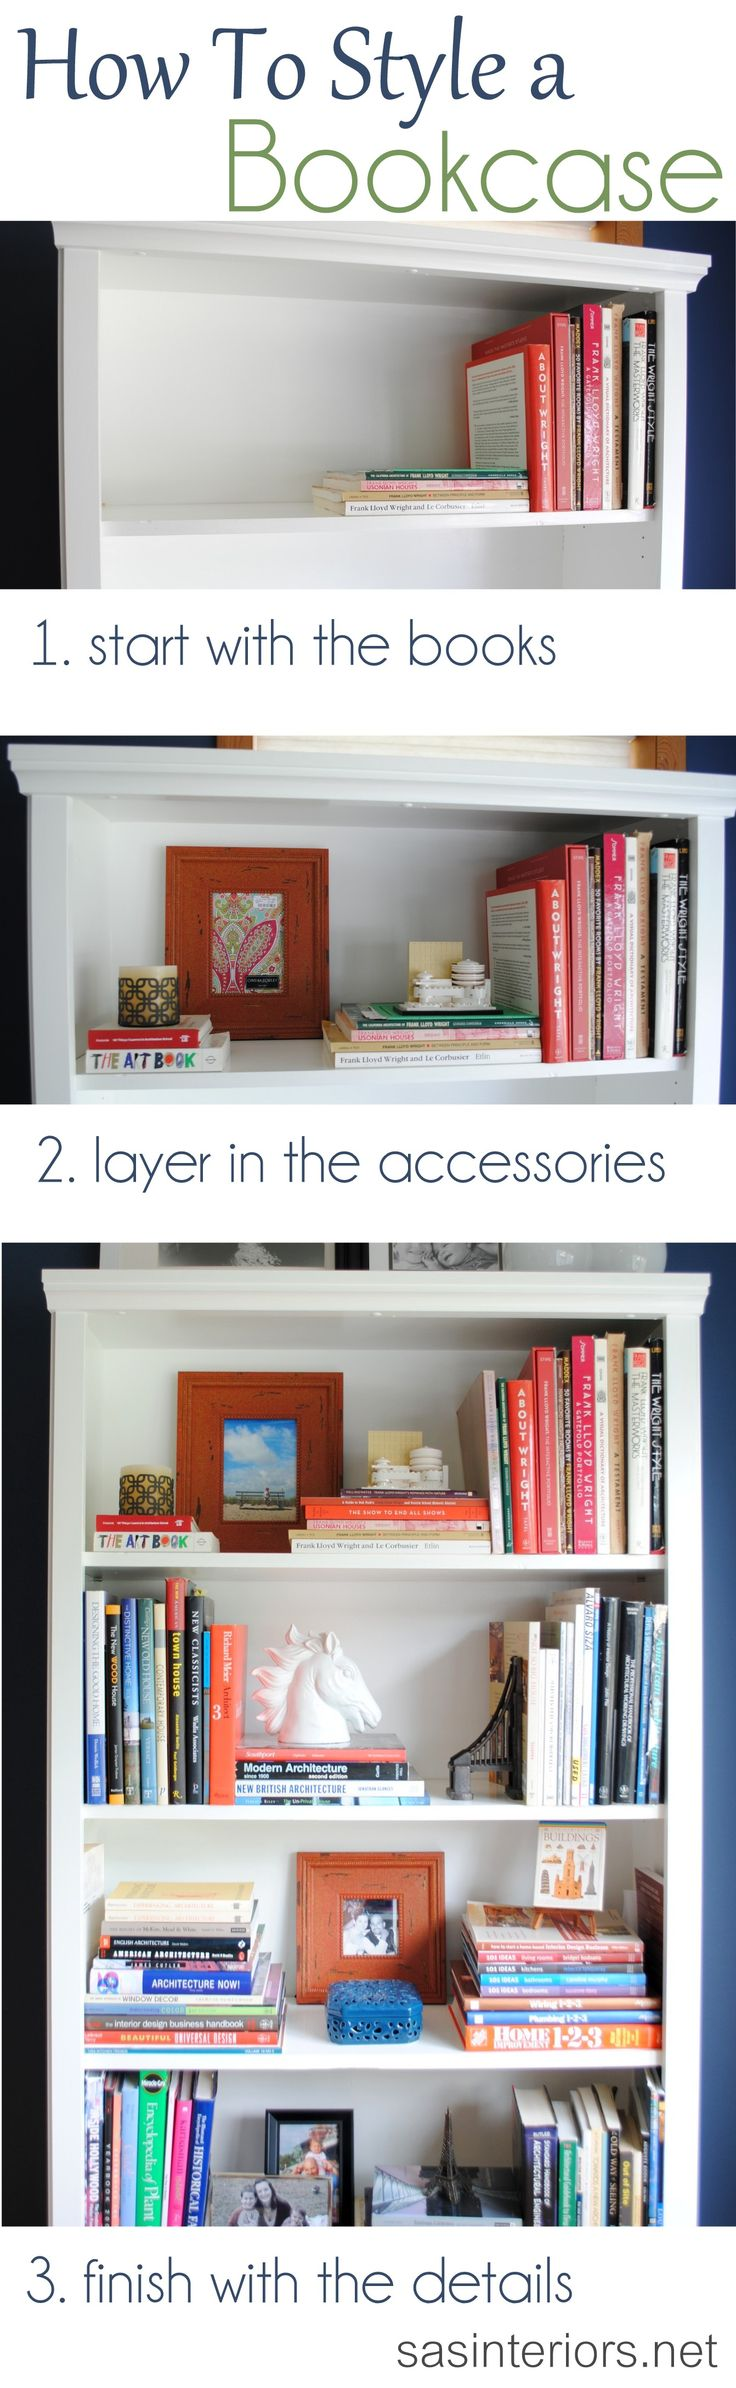 breakdown on how-to style a bookcase